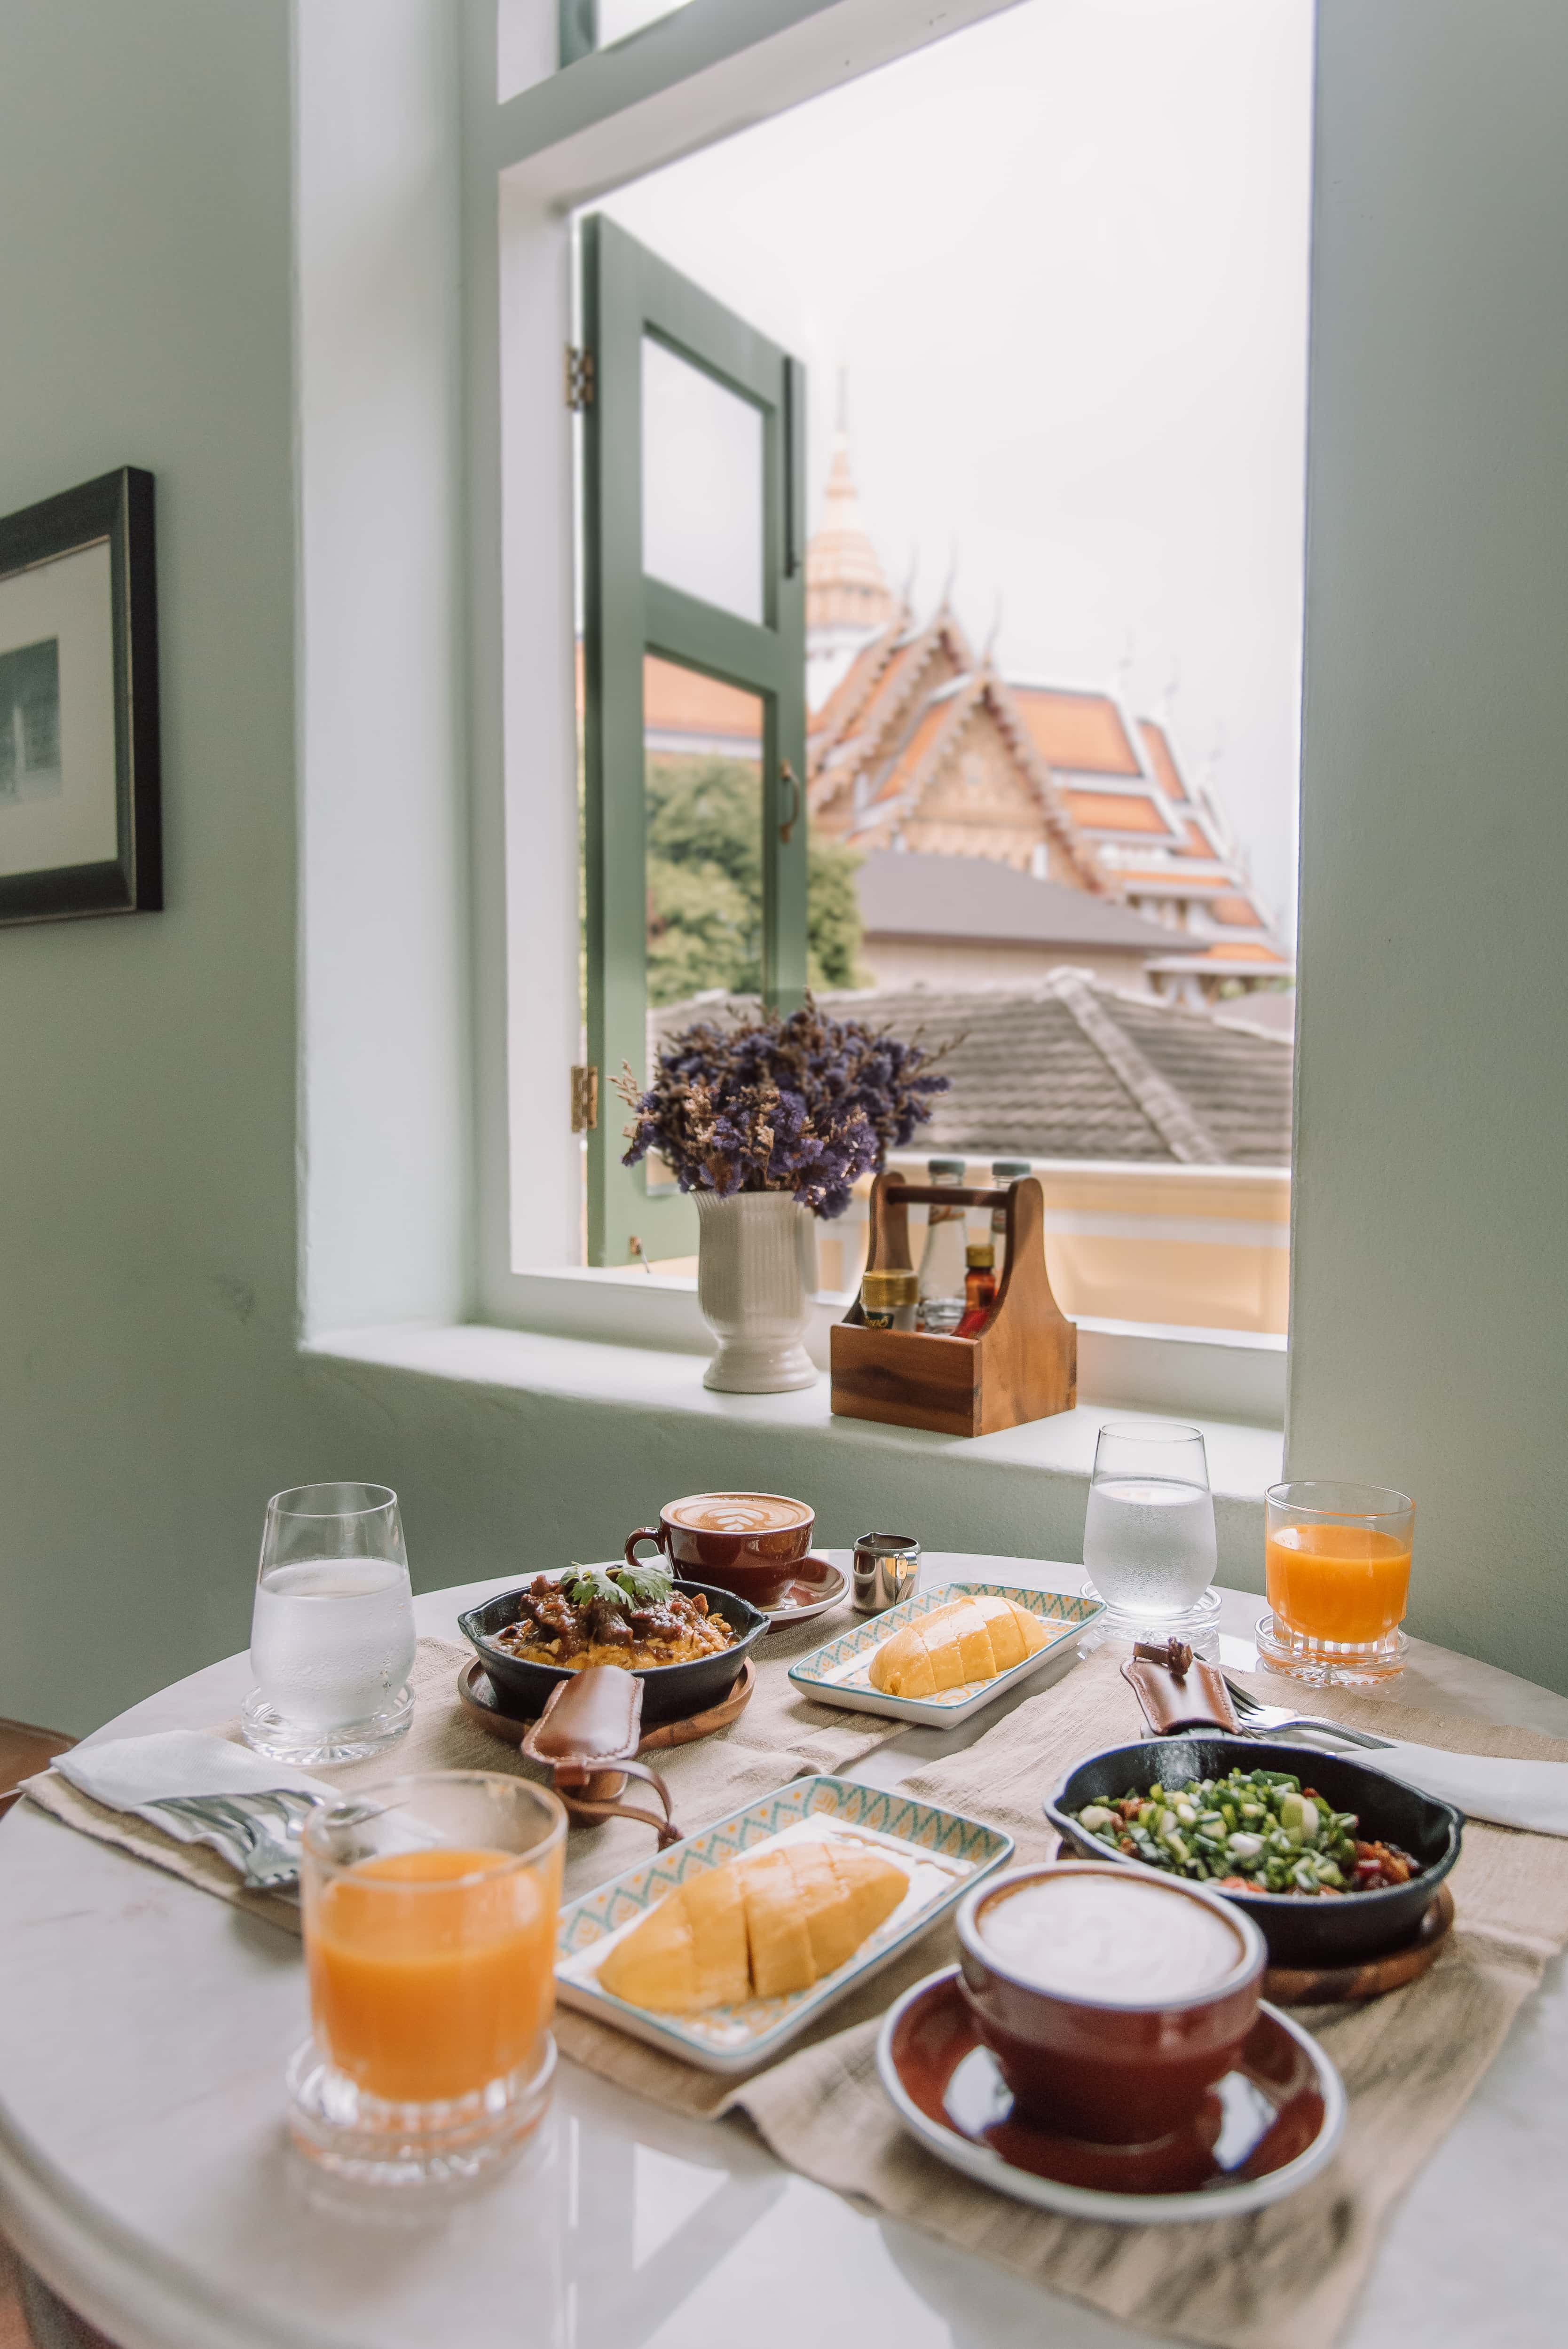 breakfast with a view, Baan 2459, Chinatown Bangkok